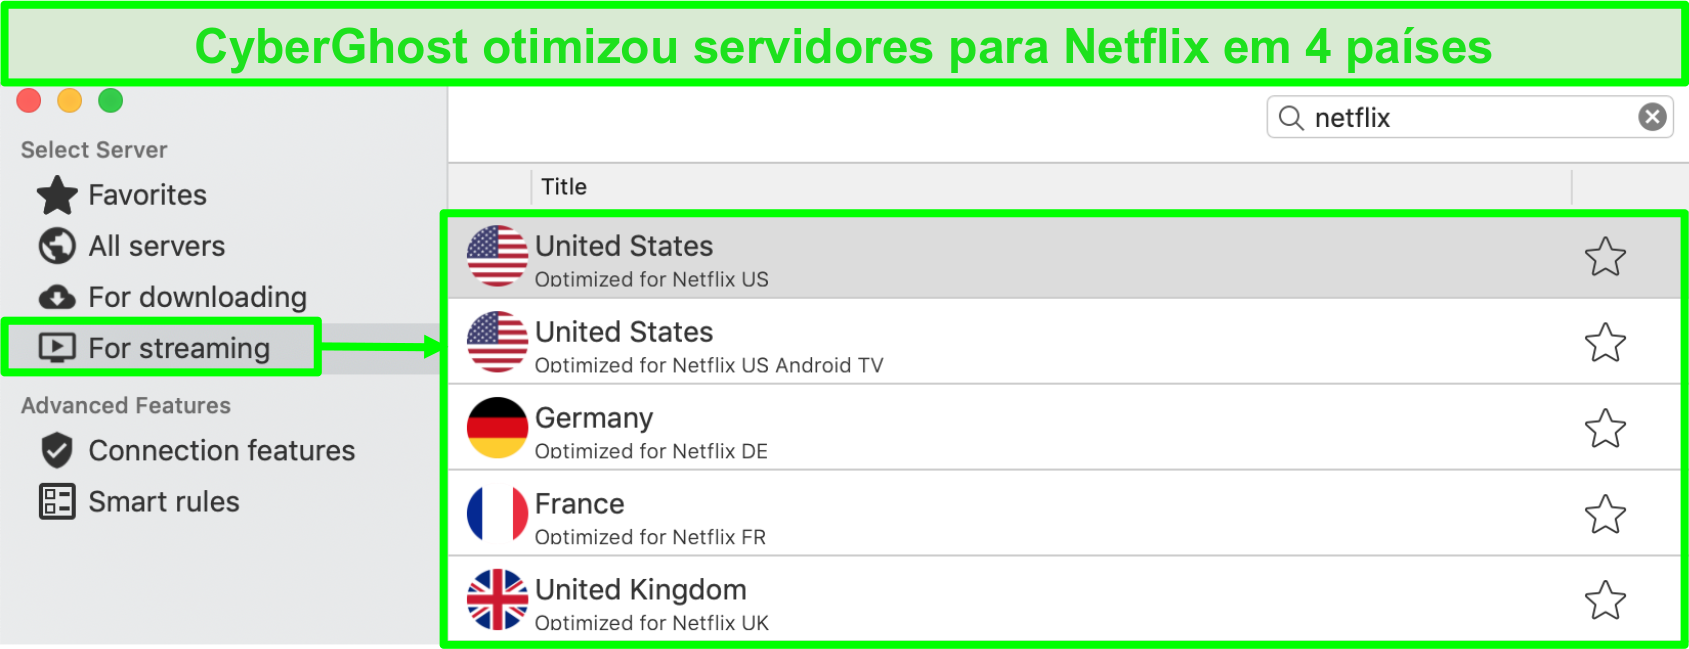 Captura de tela da interface do aplicativo CyberGhost mostrando servidores otimizados para streaming da Netflix